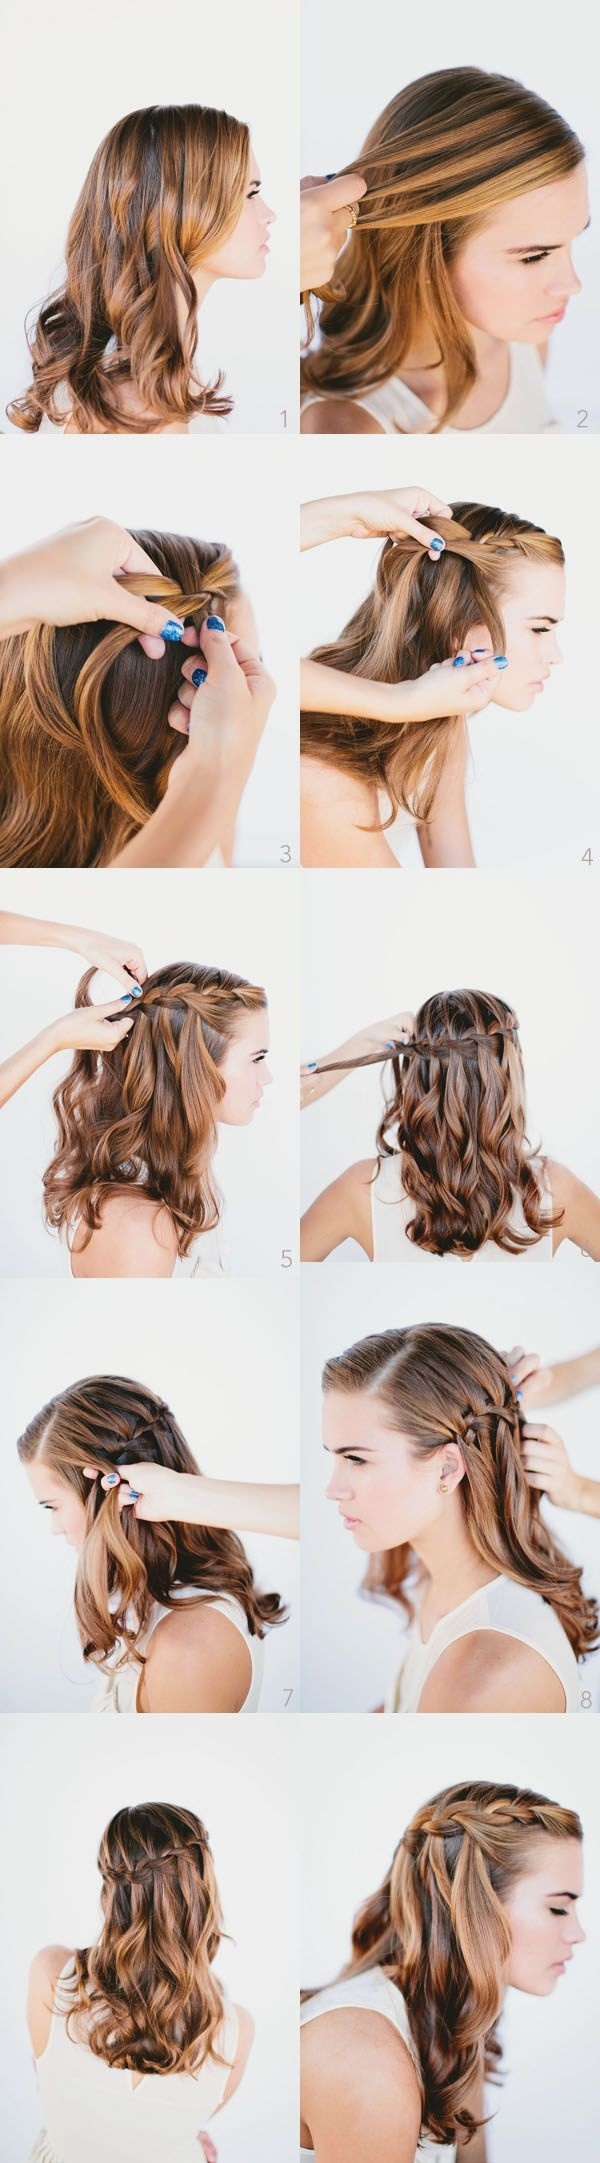 Easy Step By Step Hairstyles for Long Hair6